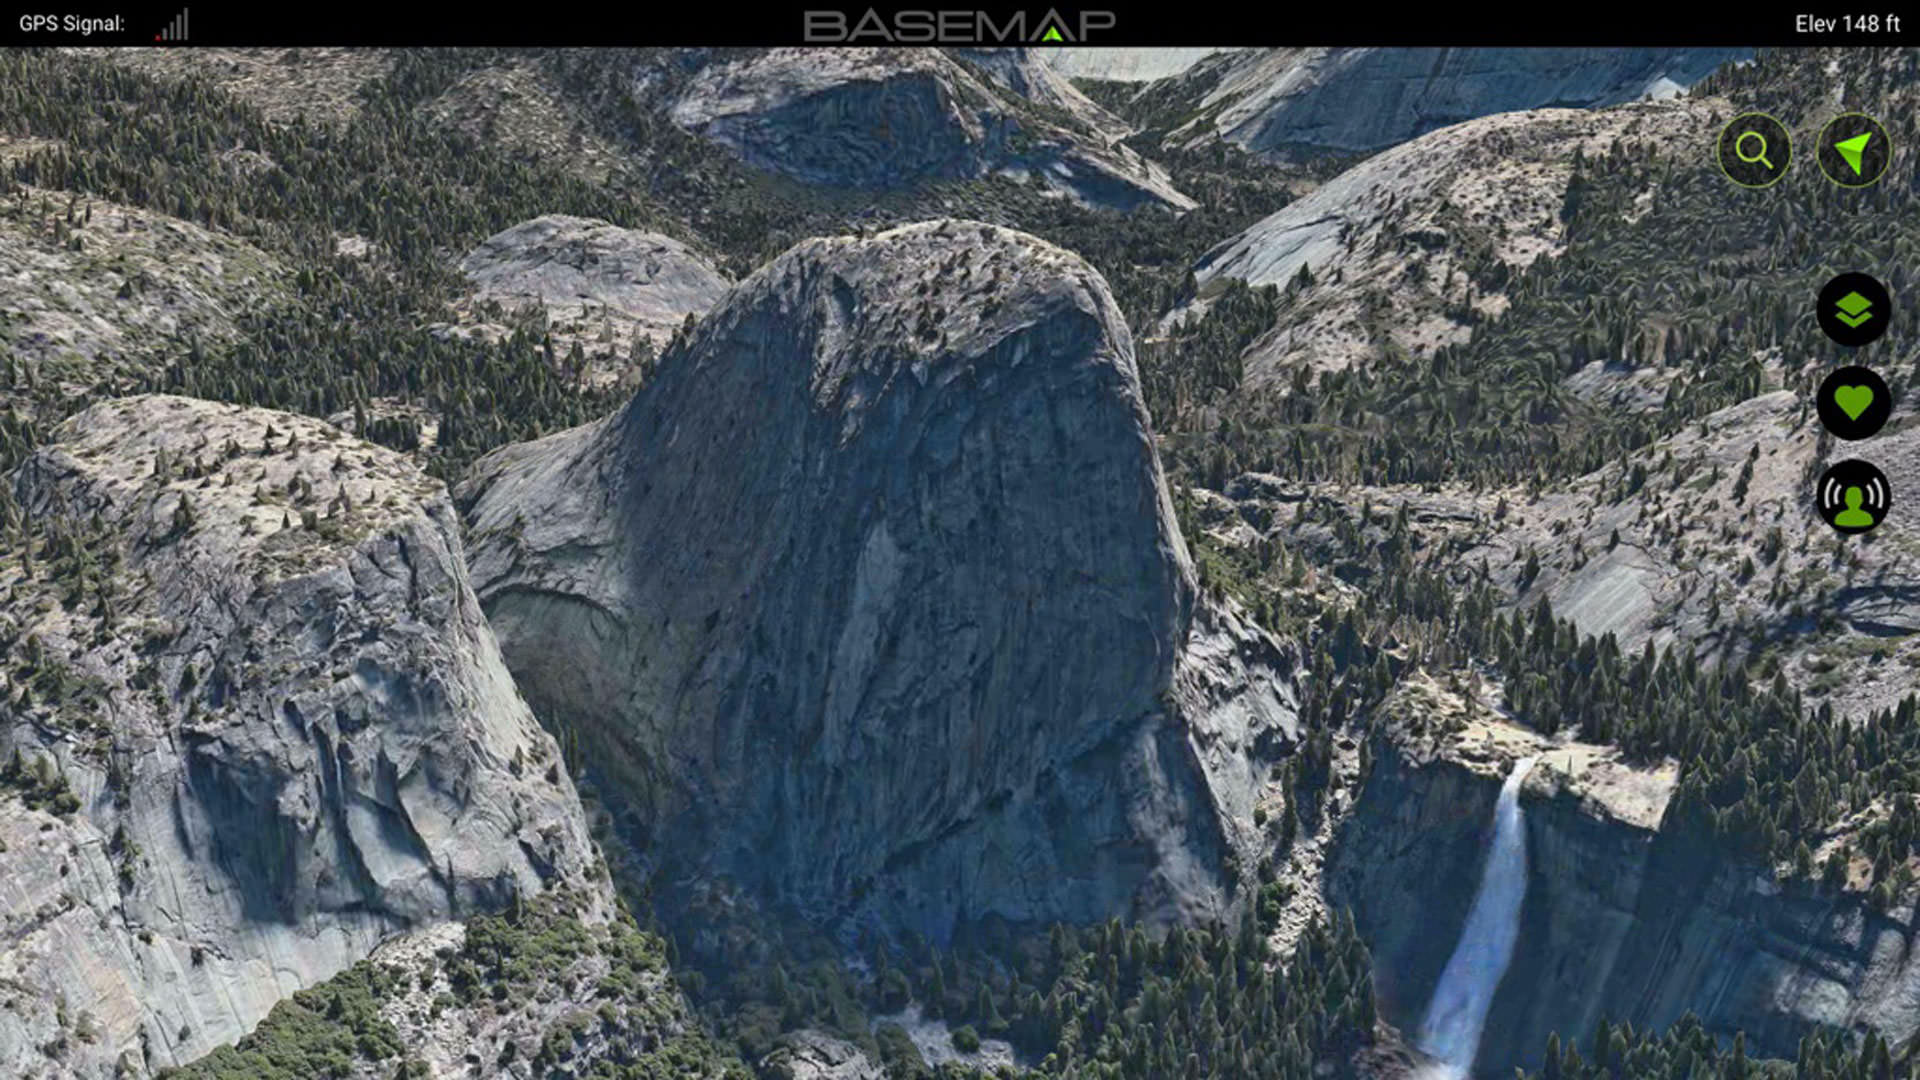 BaseMap 3D Earth for iOS. As close to boots on the ground as you can get.